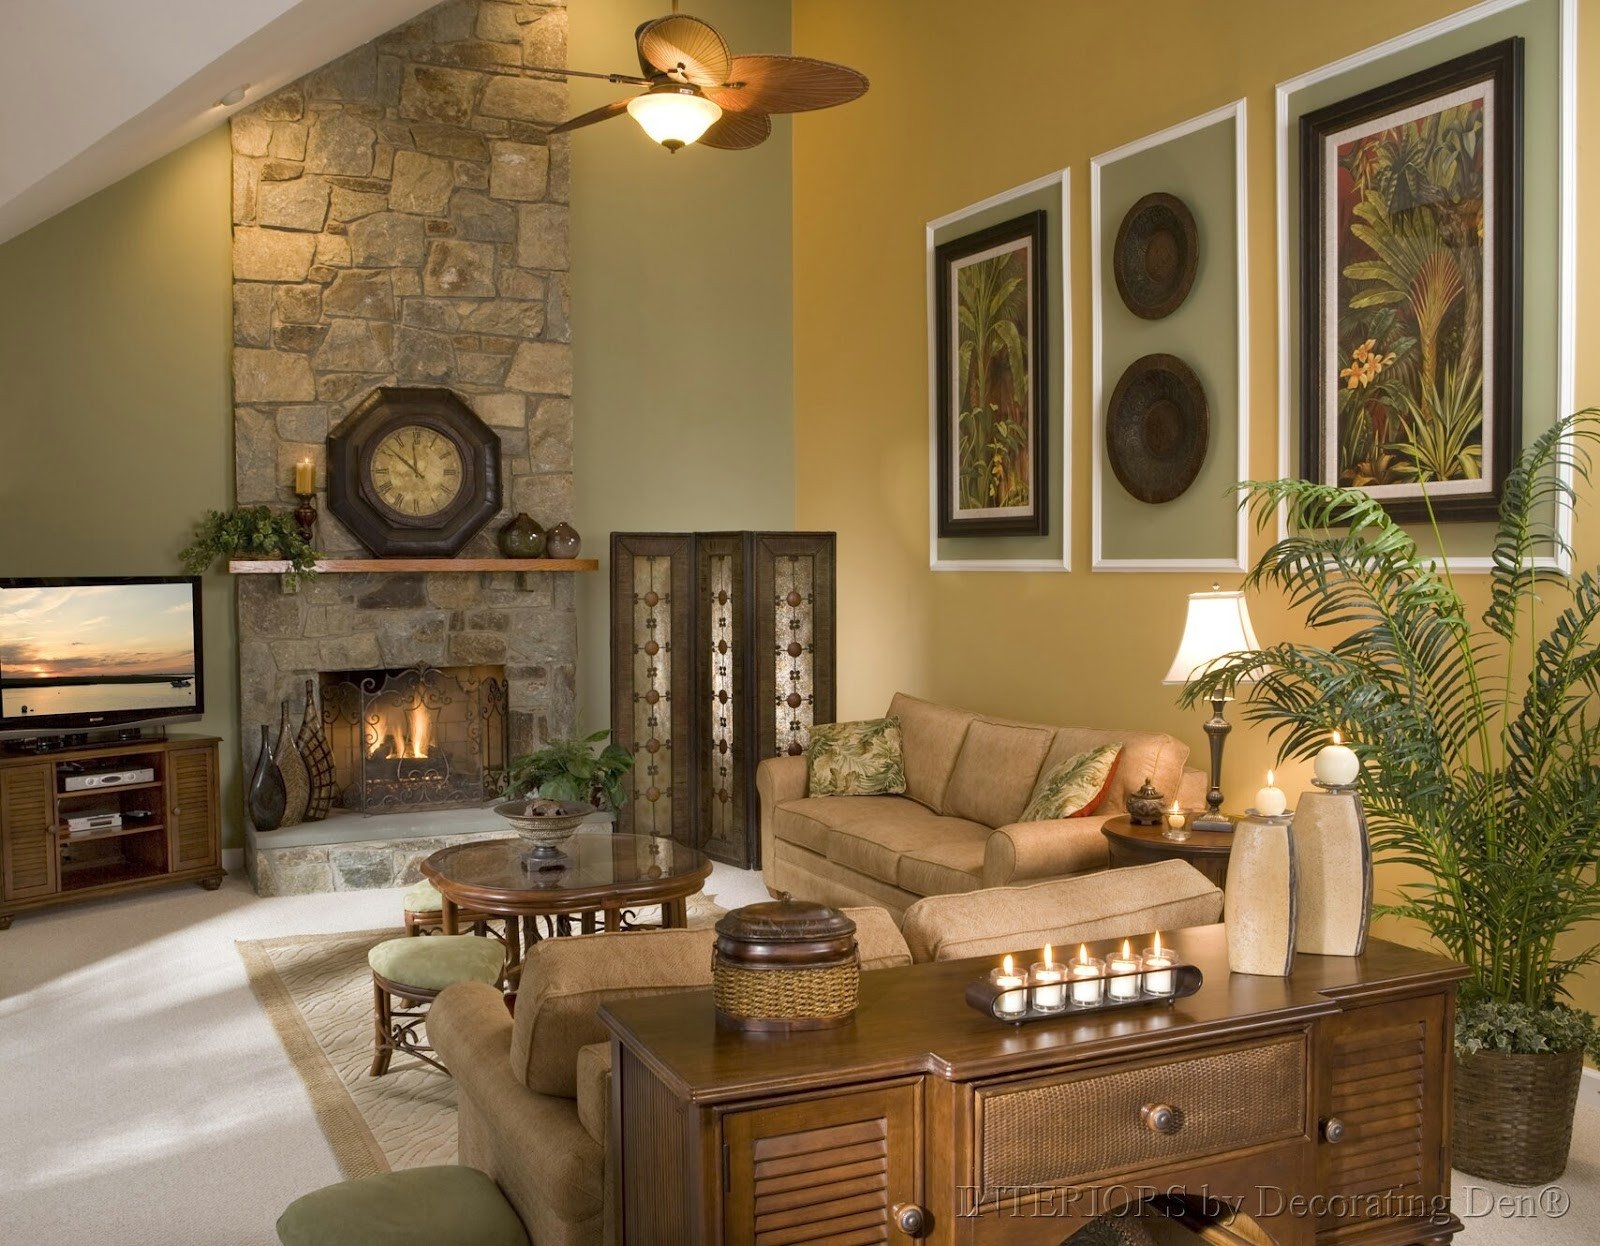 Large Living Room Wall Decor Key Interiors by Shinay How to Decorate with High Ceilings